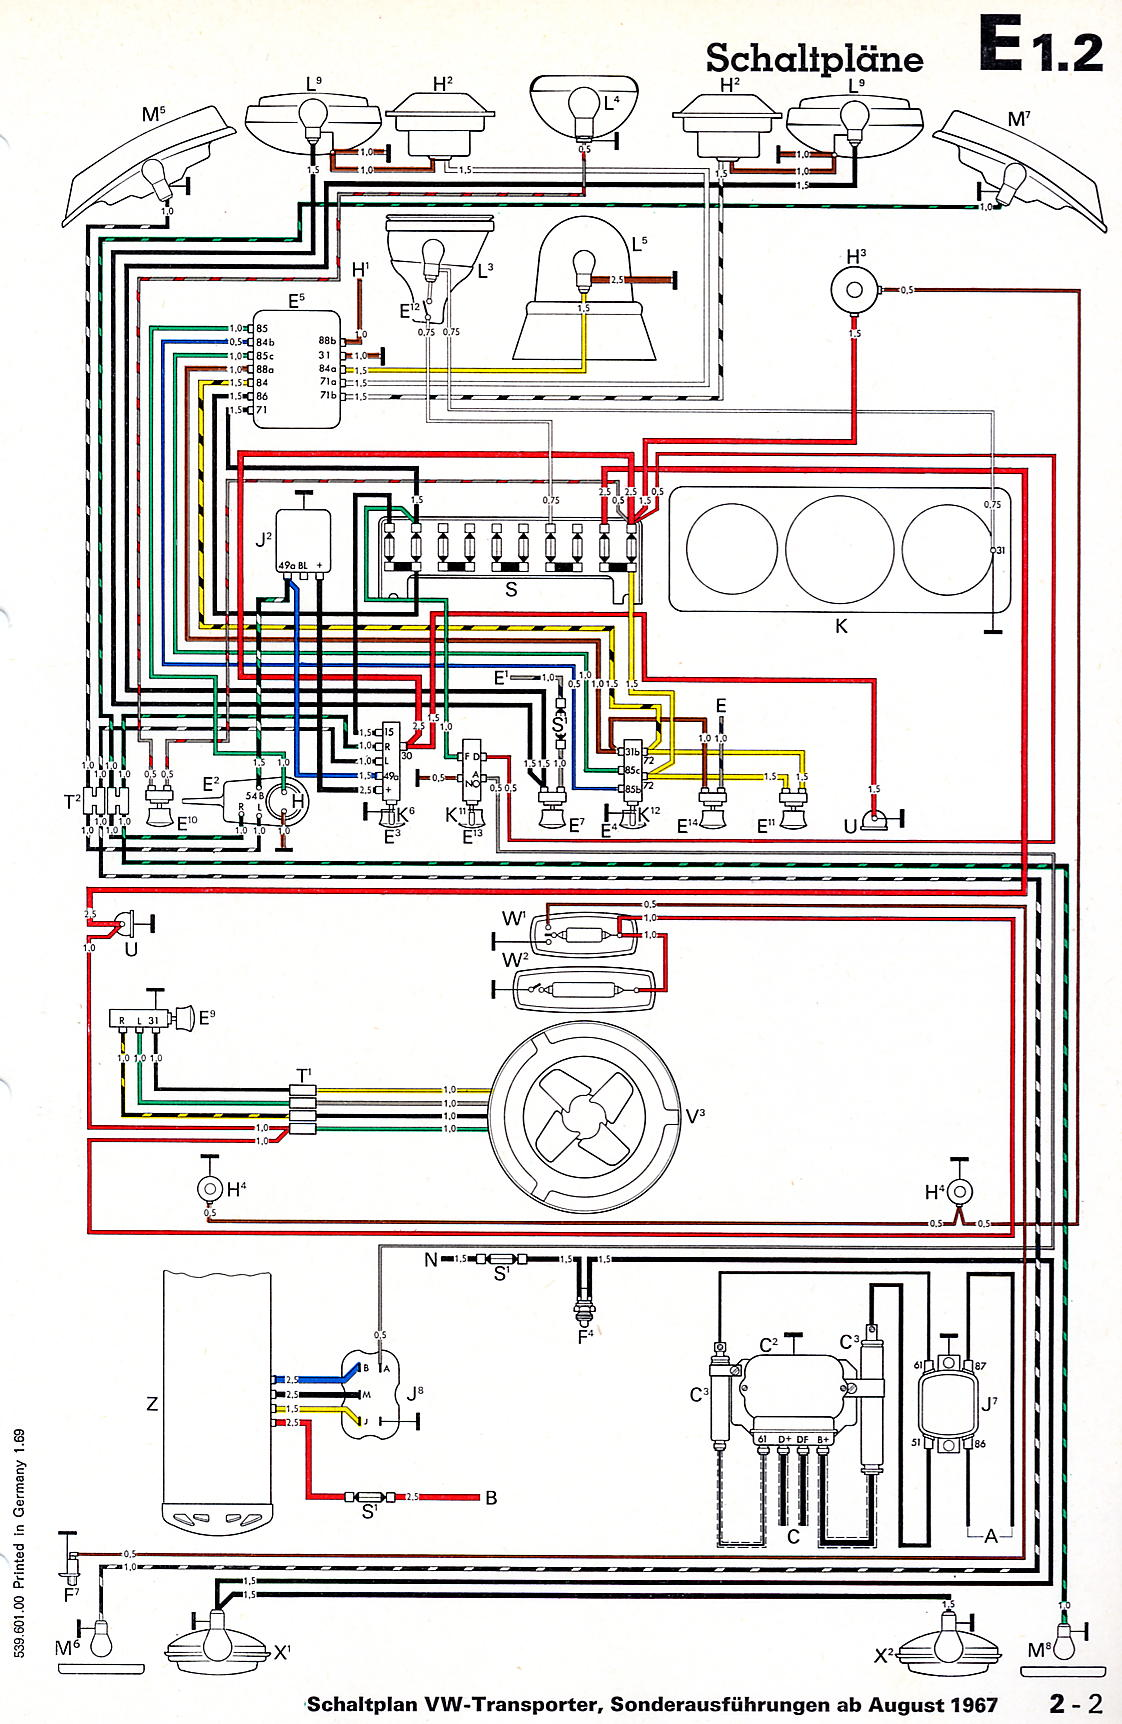 Transporter_from_August_1967_aditional_items vintagebus com vw bus (and other) wiring diagrams vw t4 electric window wiring diagram at gsmx.co